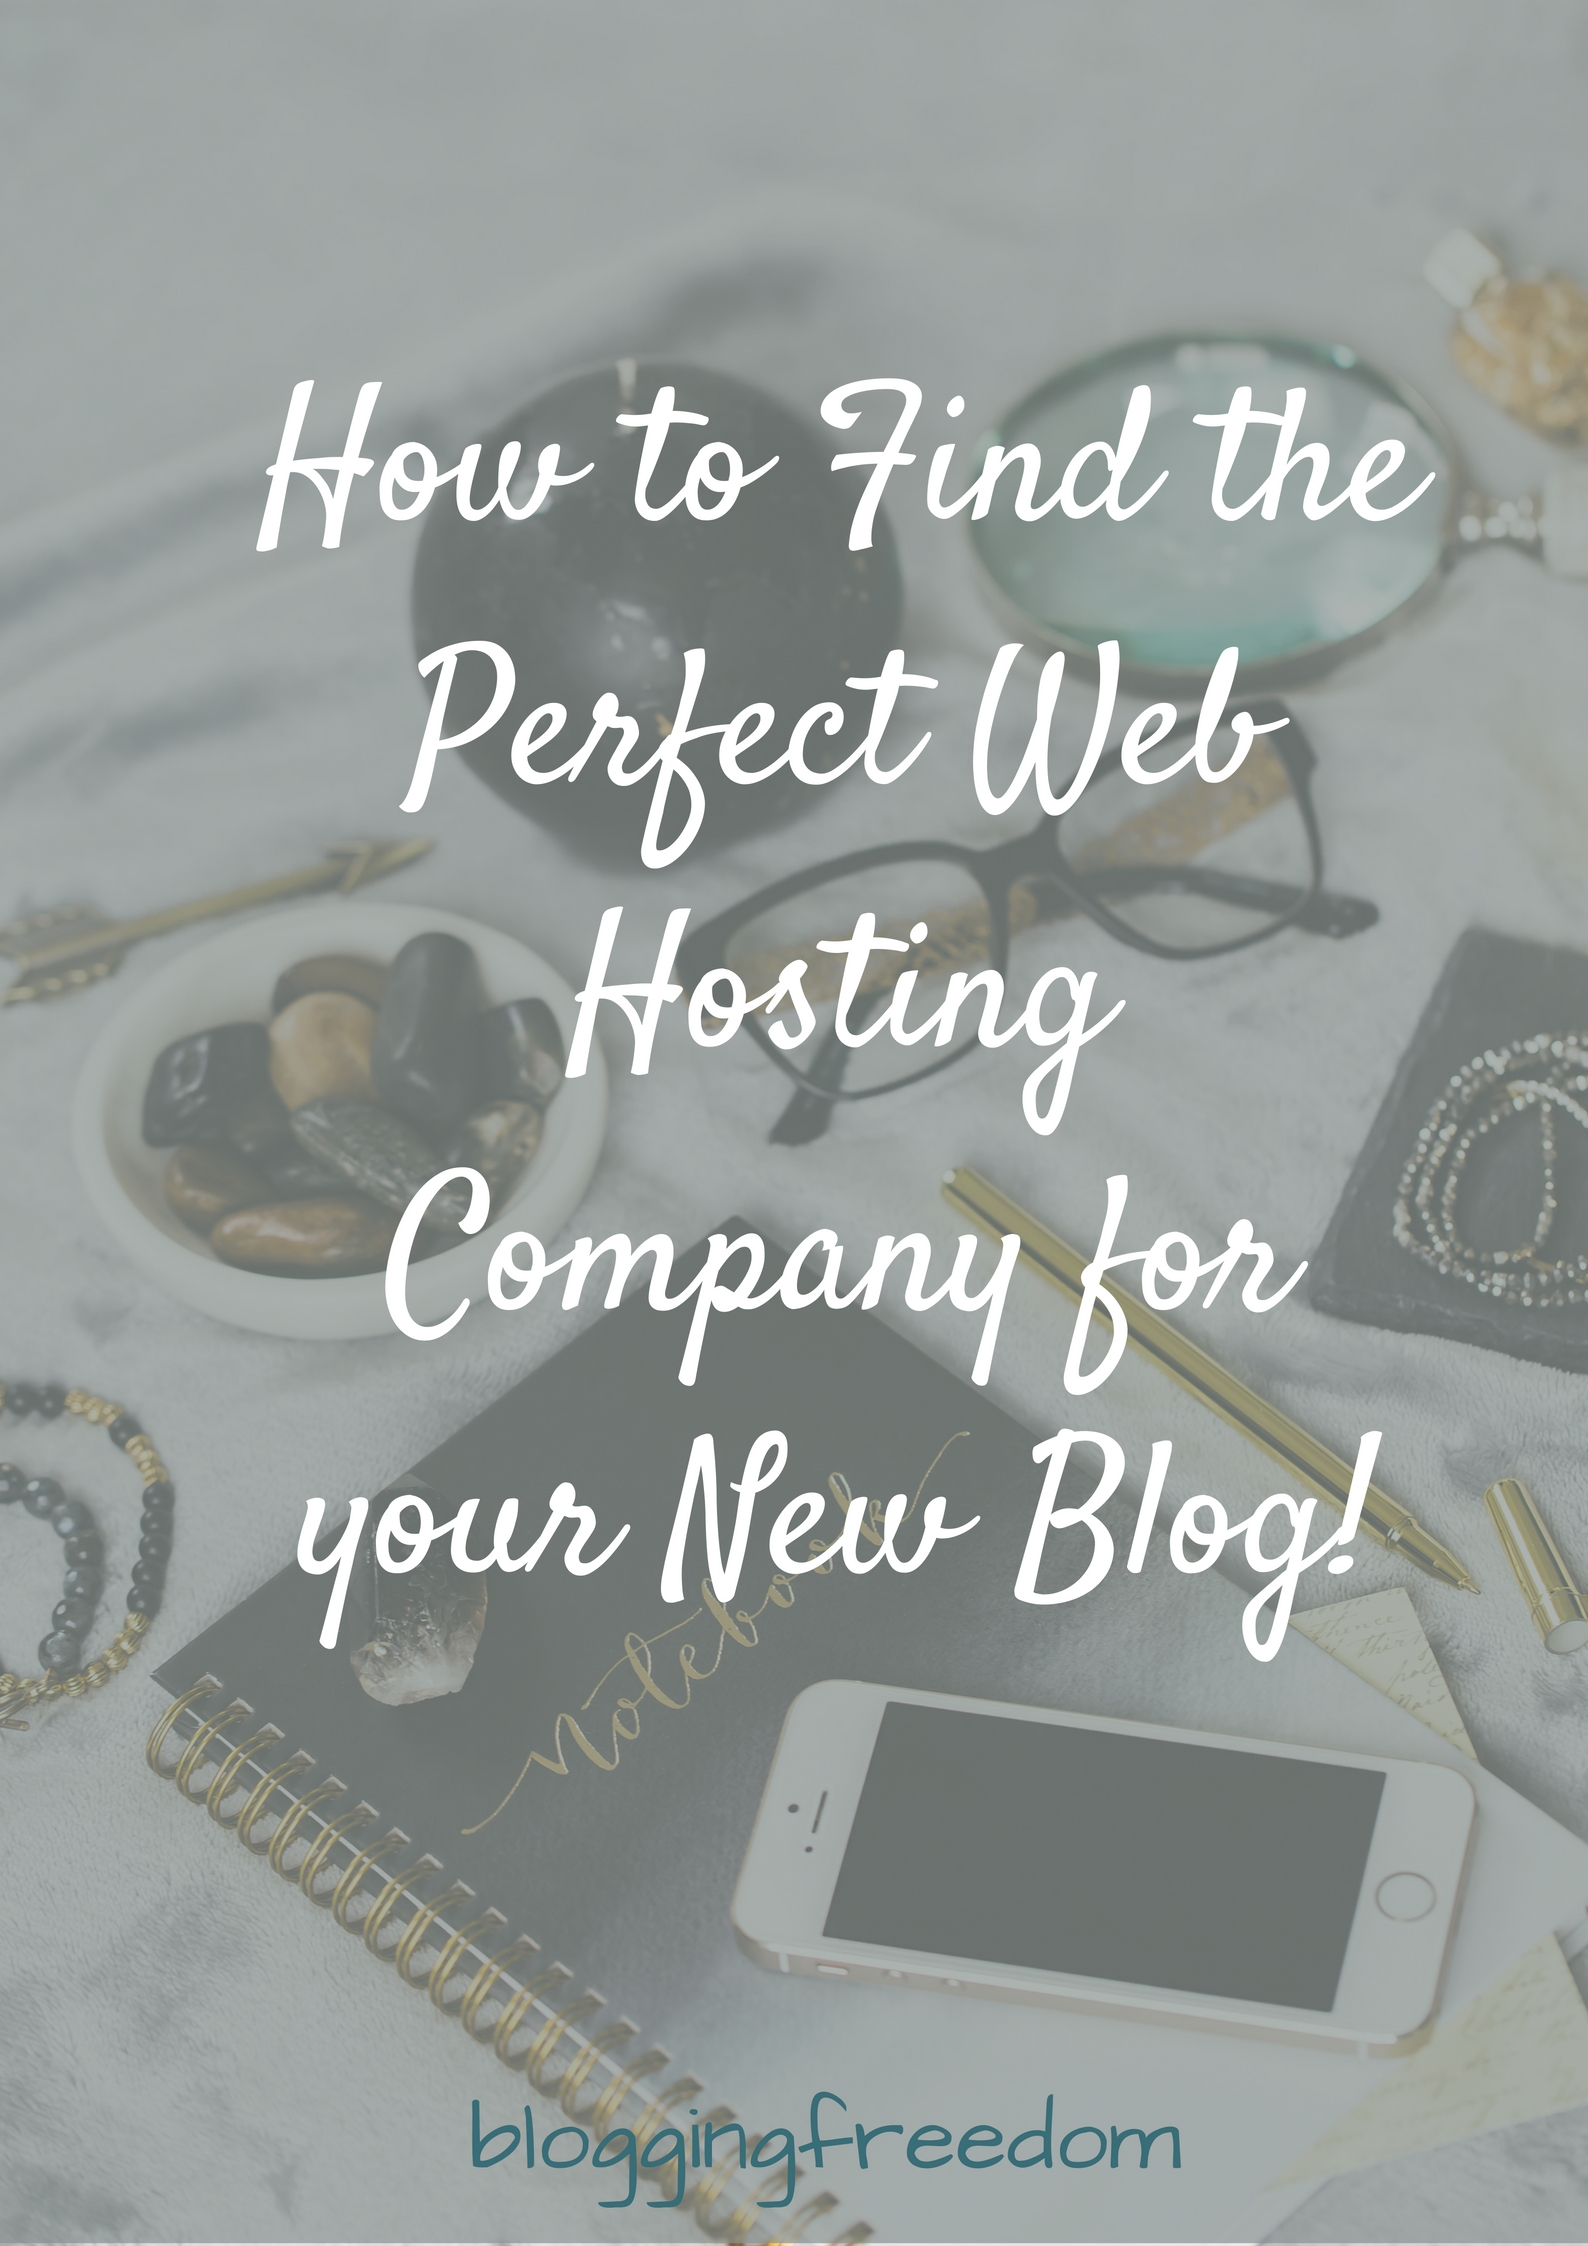 How to find the perfect web hosting company for your new blog!